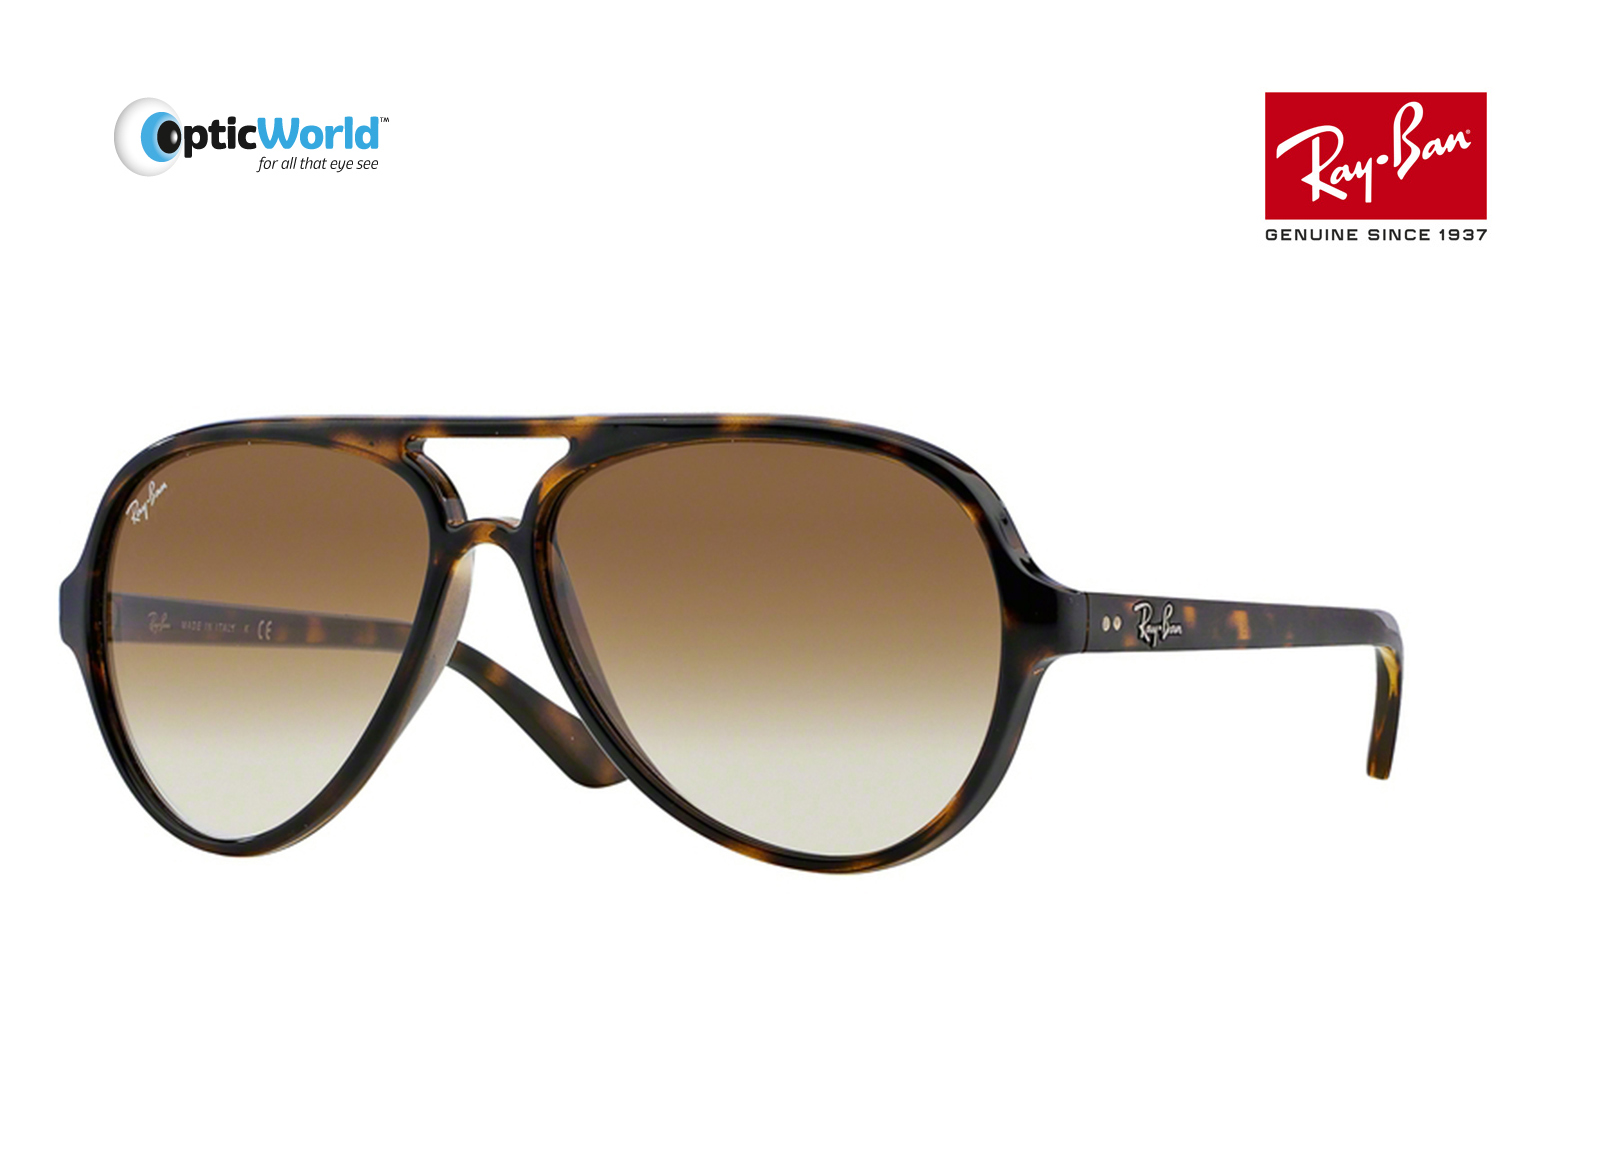 0086ef48fb7 ... australia ray ban rb4125 cats 5000 aviator sunglasses. about this  product. picture 1 of